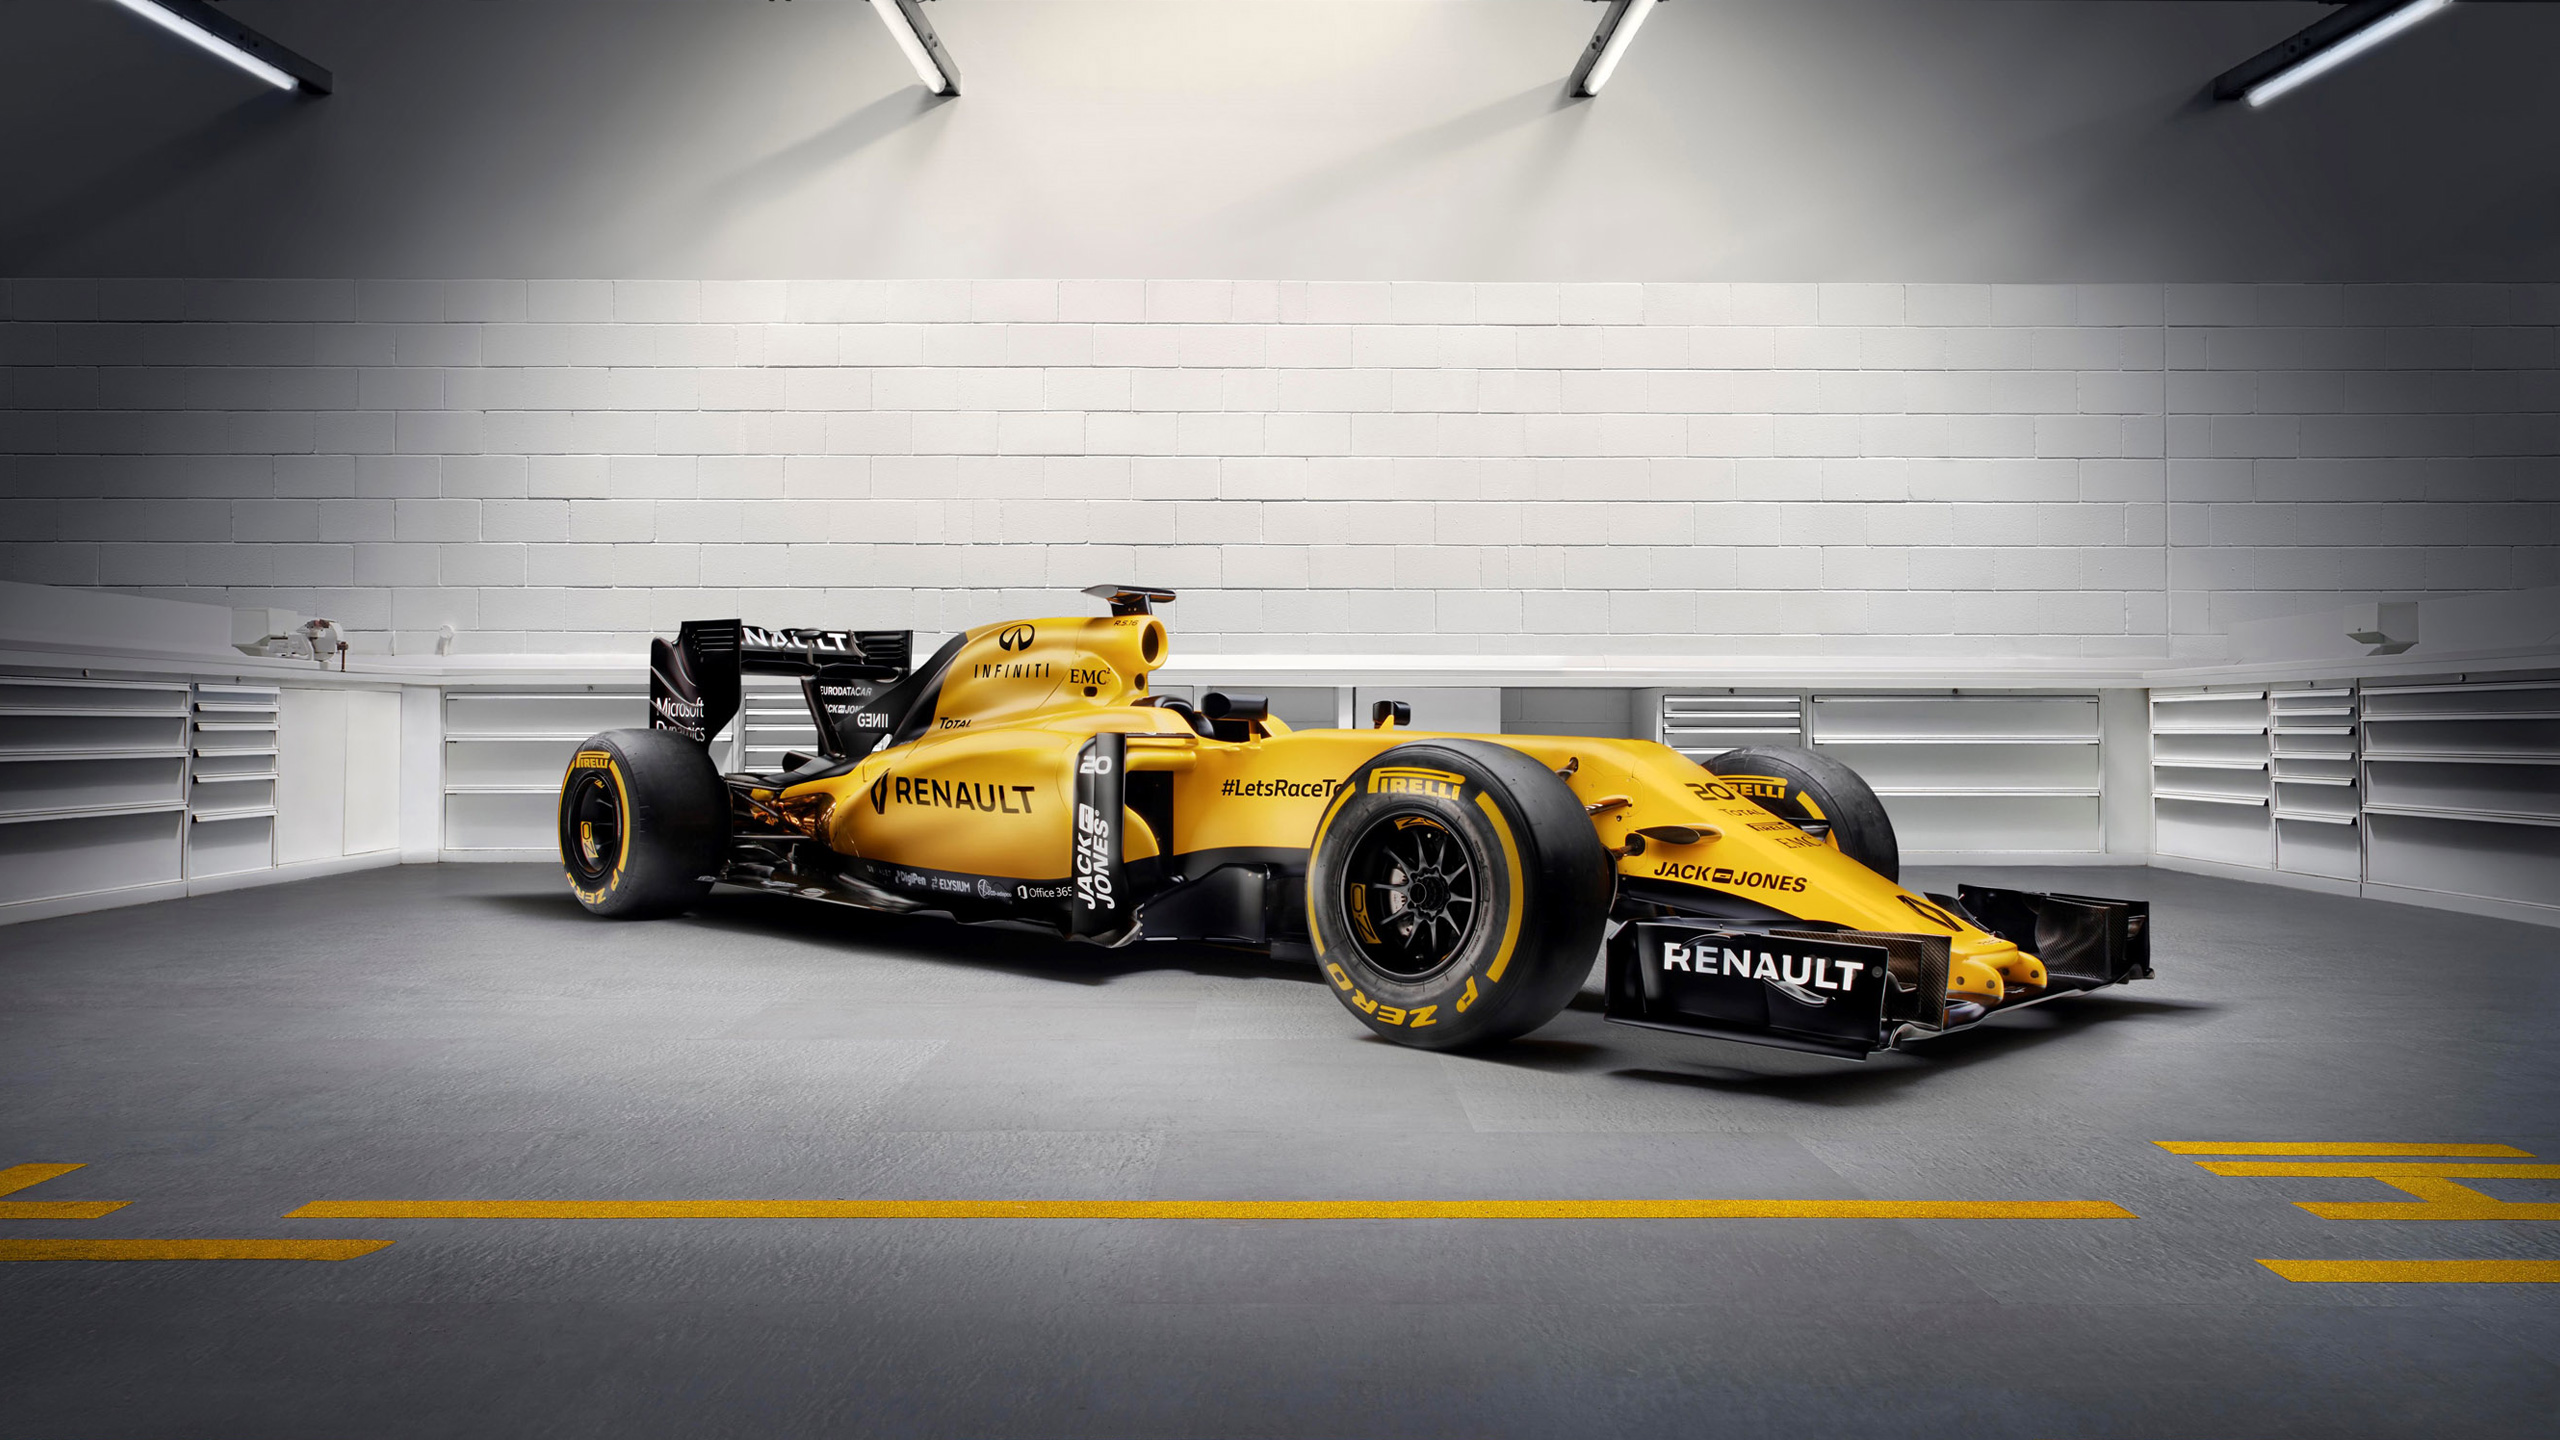 2016 renault rs16 formula 1 wallpaper hd car wallpapers id 6320. Black Bedroom Furniture Sets. Home Design Ideas